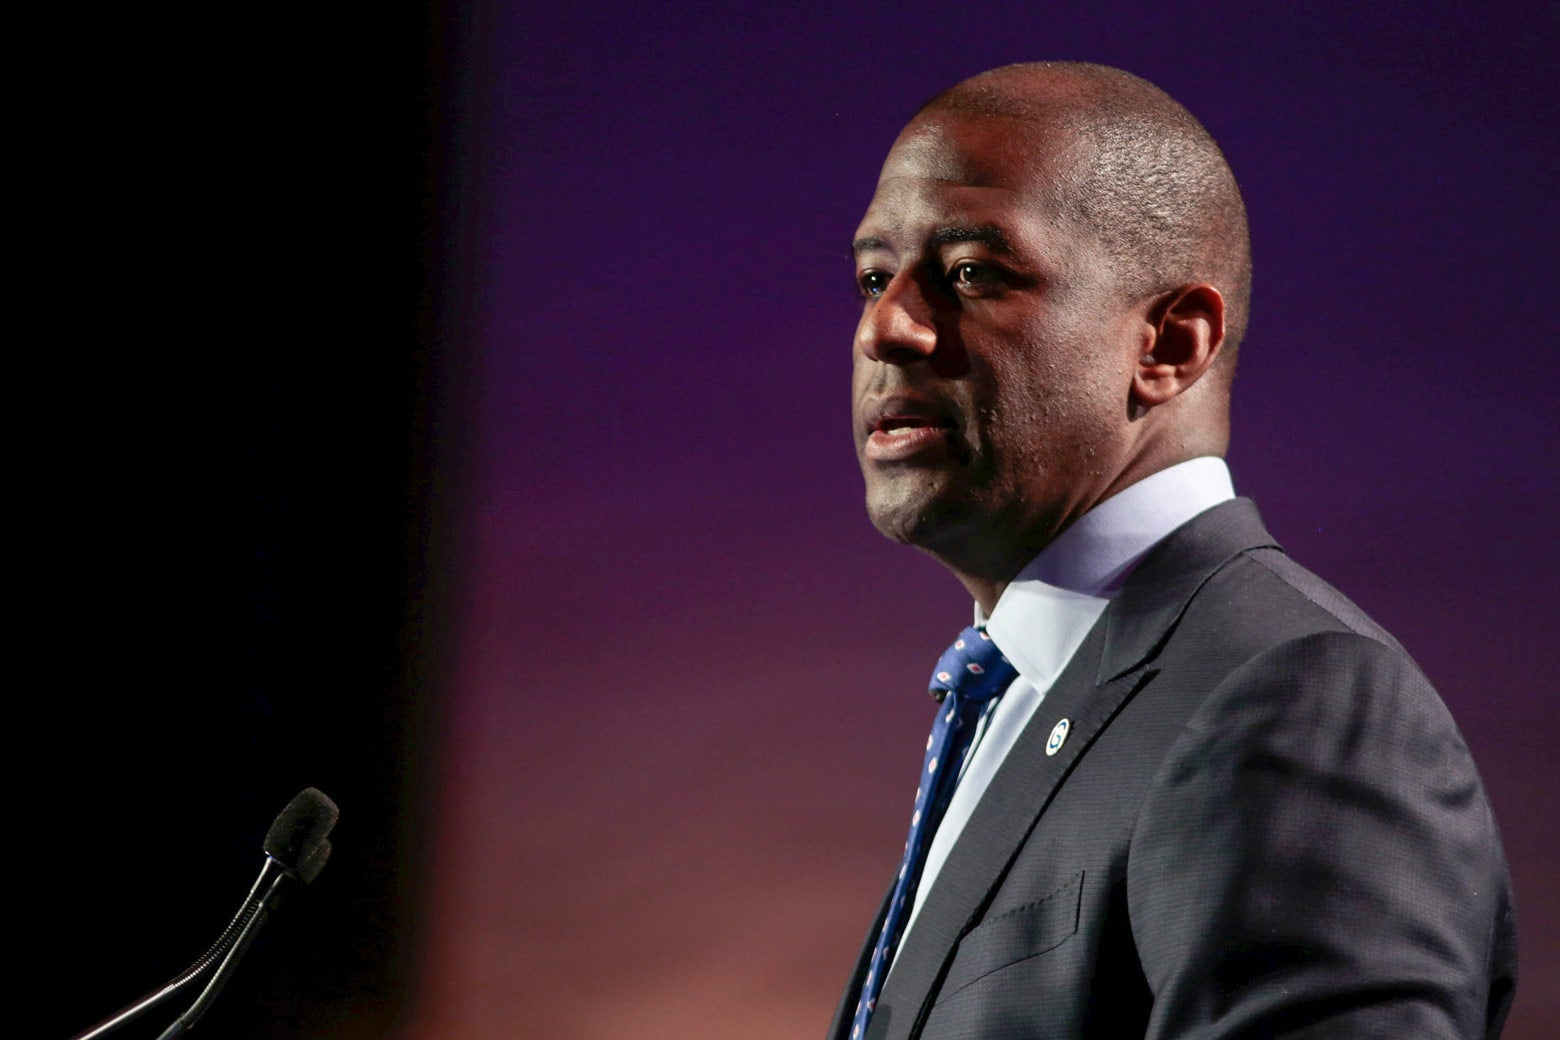 Andrew Gillum addresses the audience at he Netroots Nation annual conference for political progressives in Atlanta, Georgia on August 10, 2017.